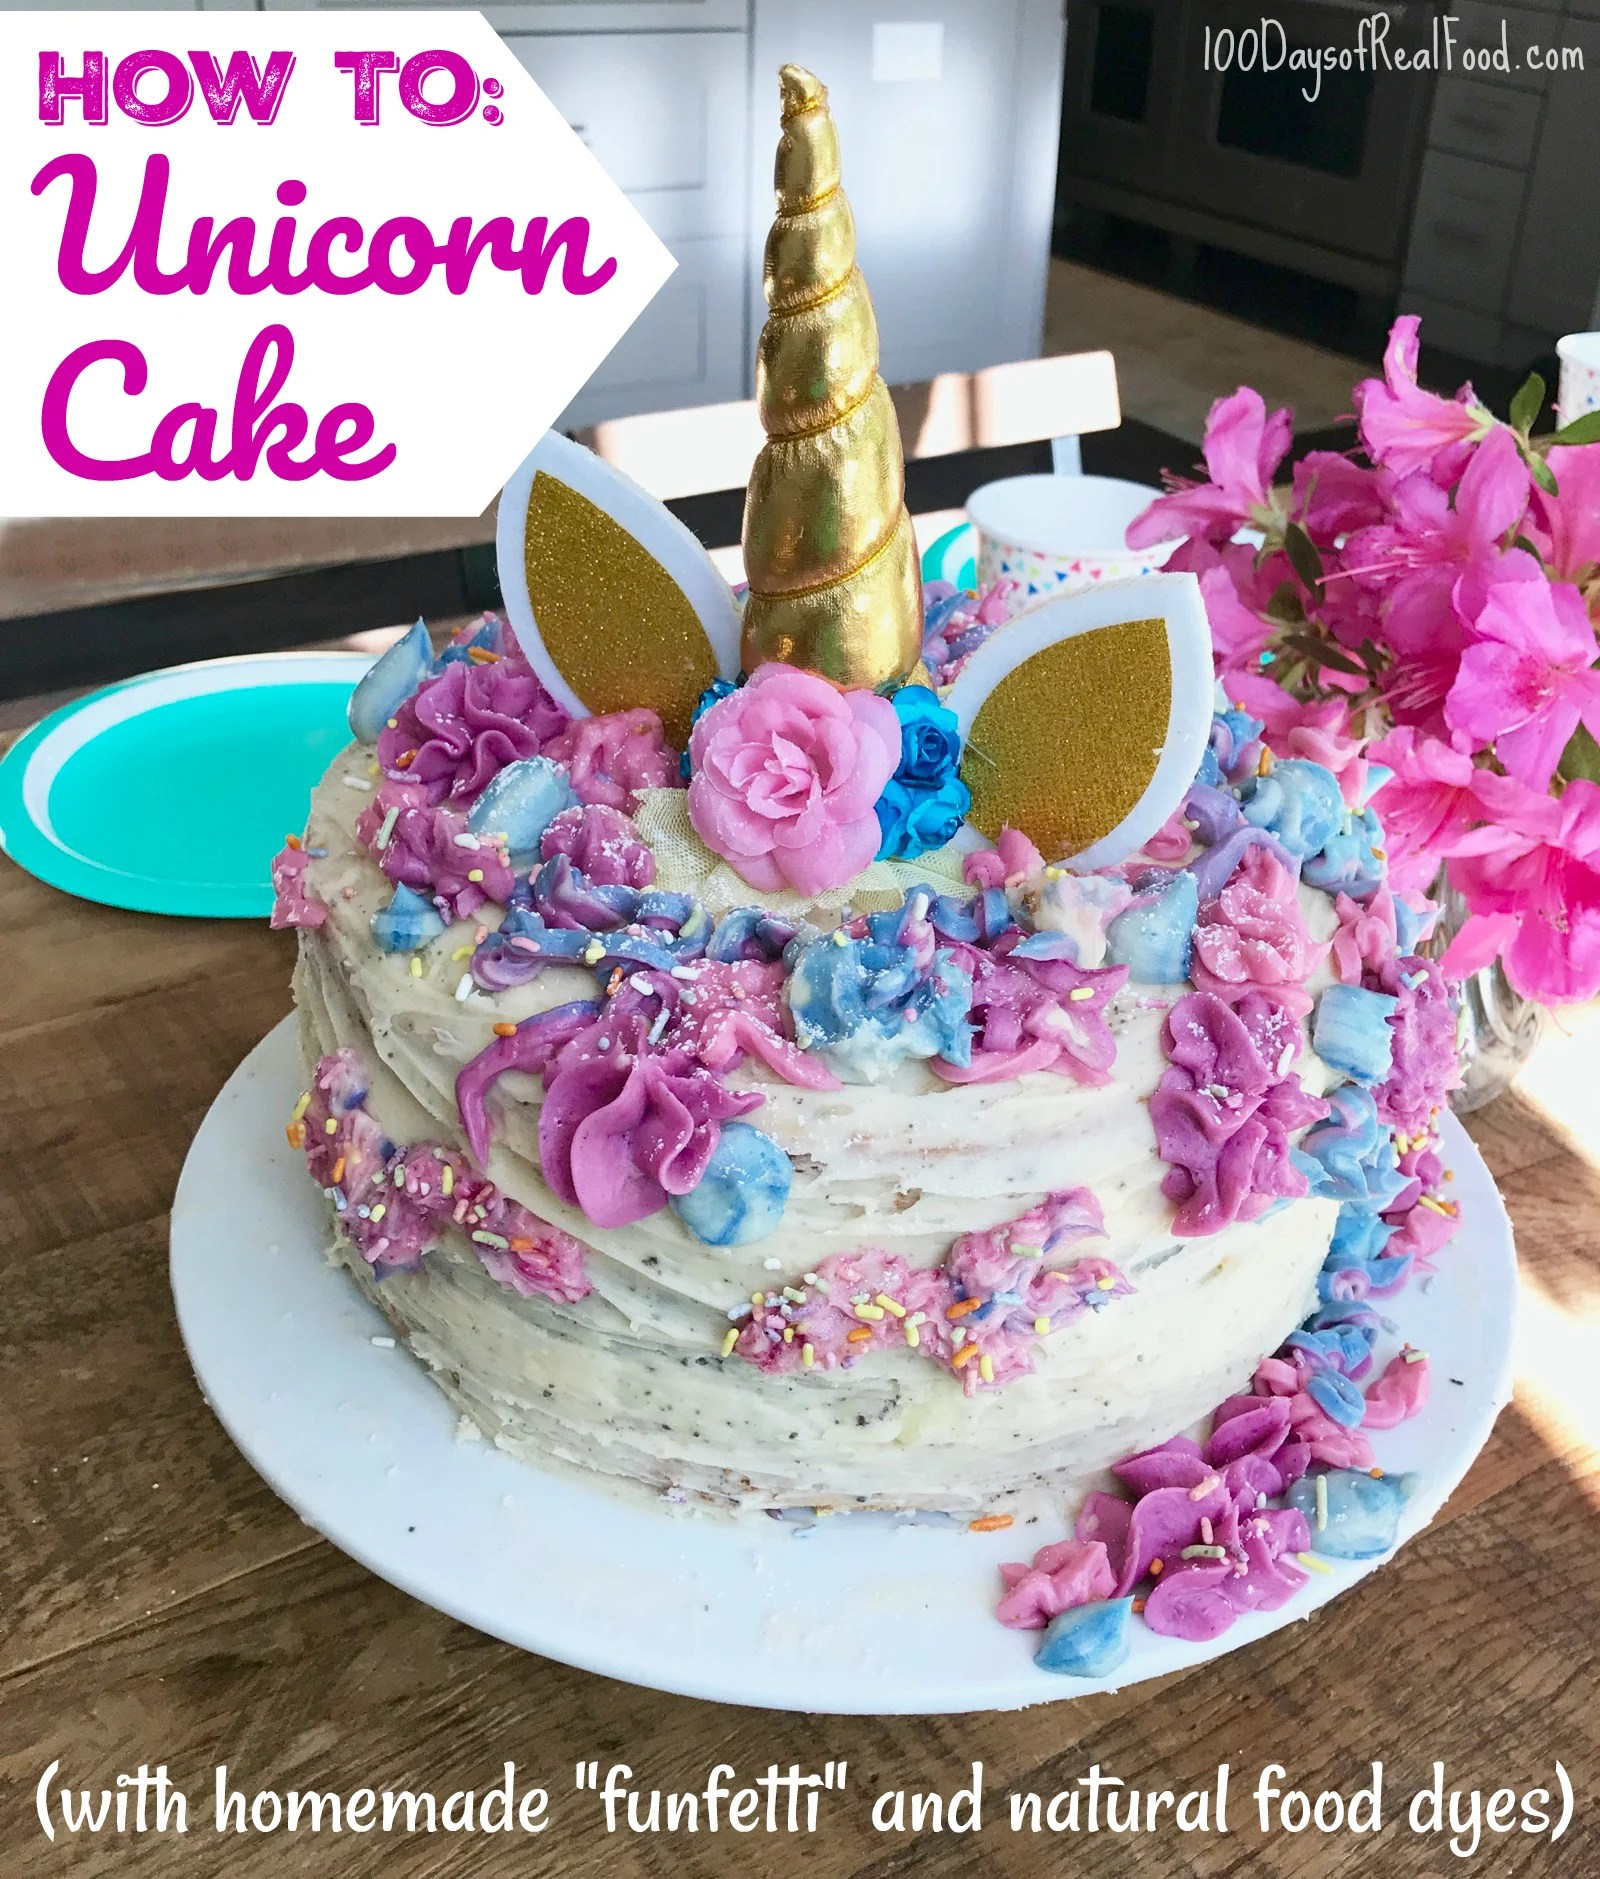 How To Unicorn Cake With Homemade Funfetti And Natural